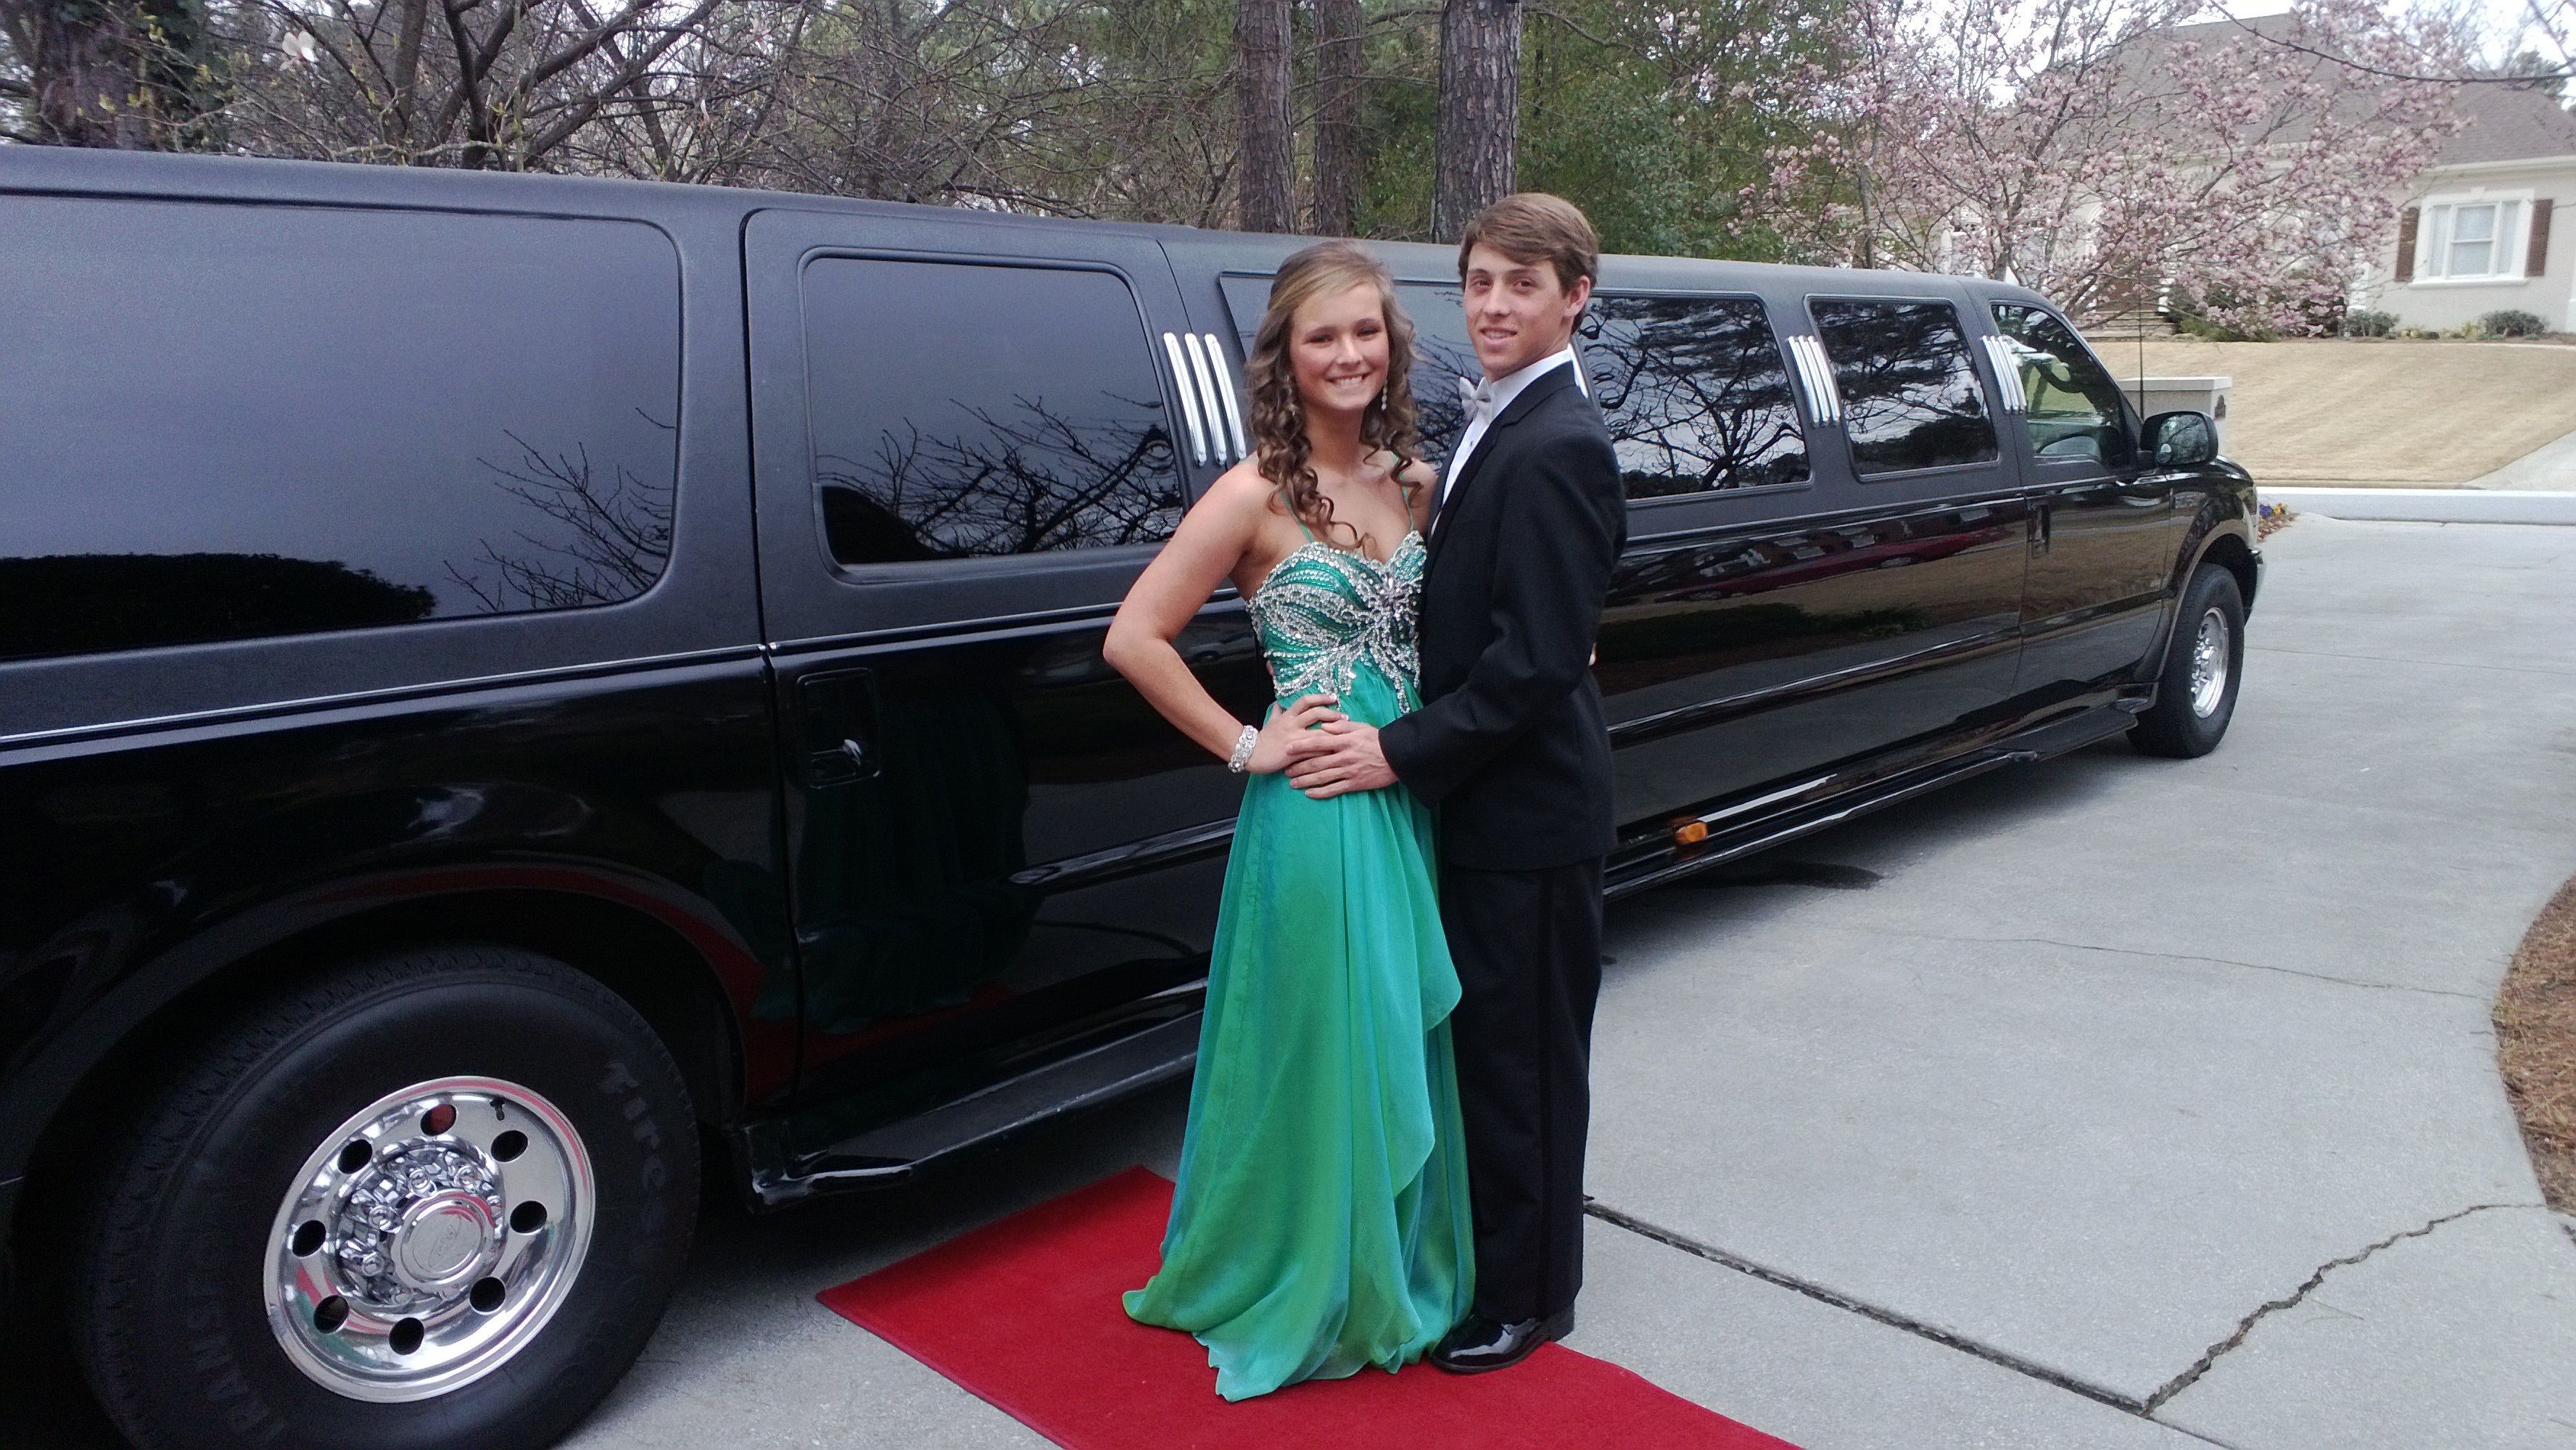 Limo Prom Booking A Limo For Prom Service With Xatric Limousine Service